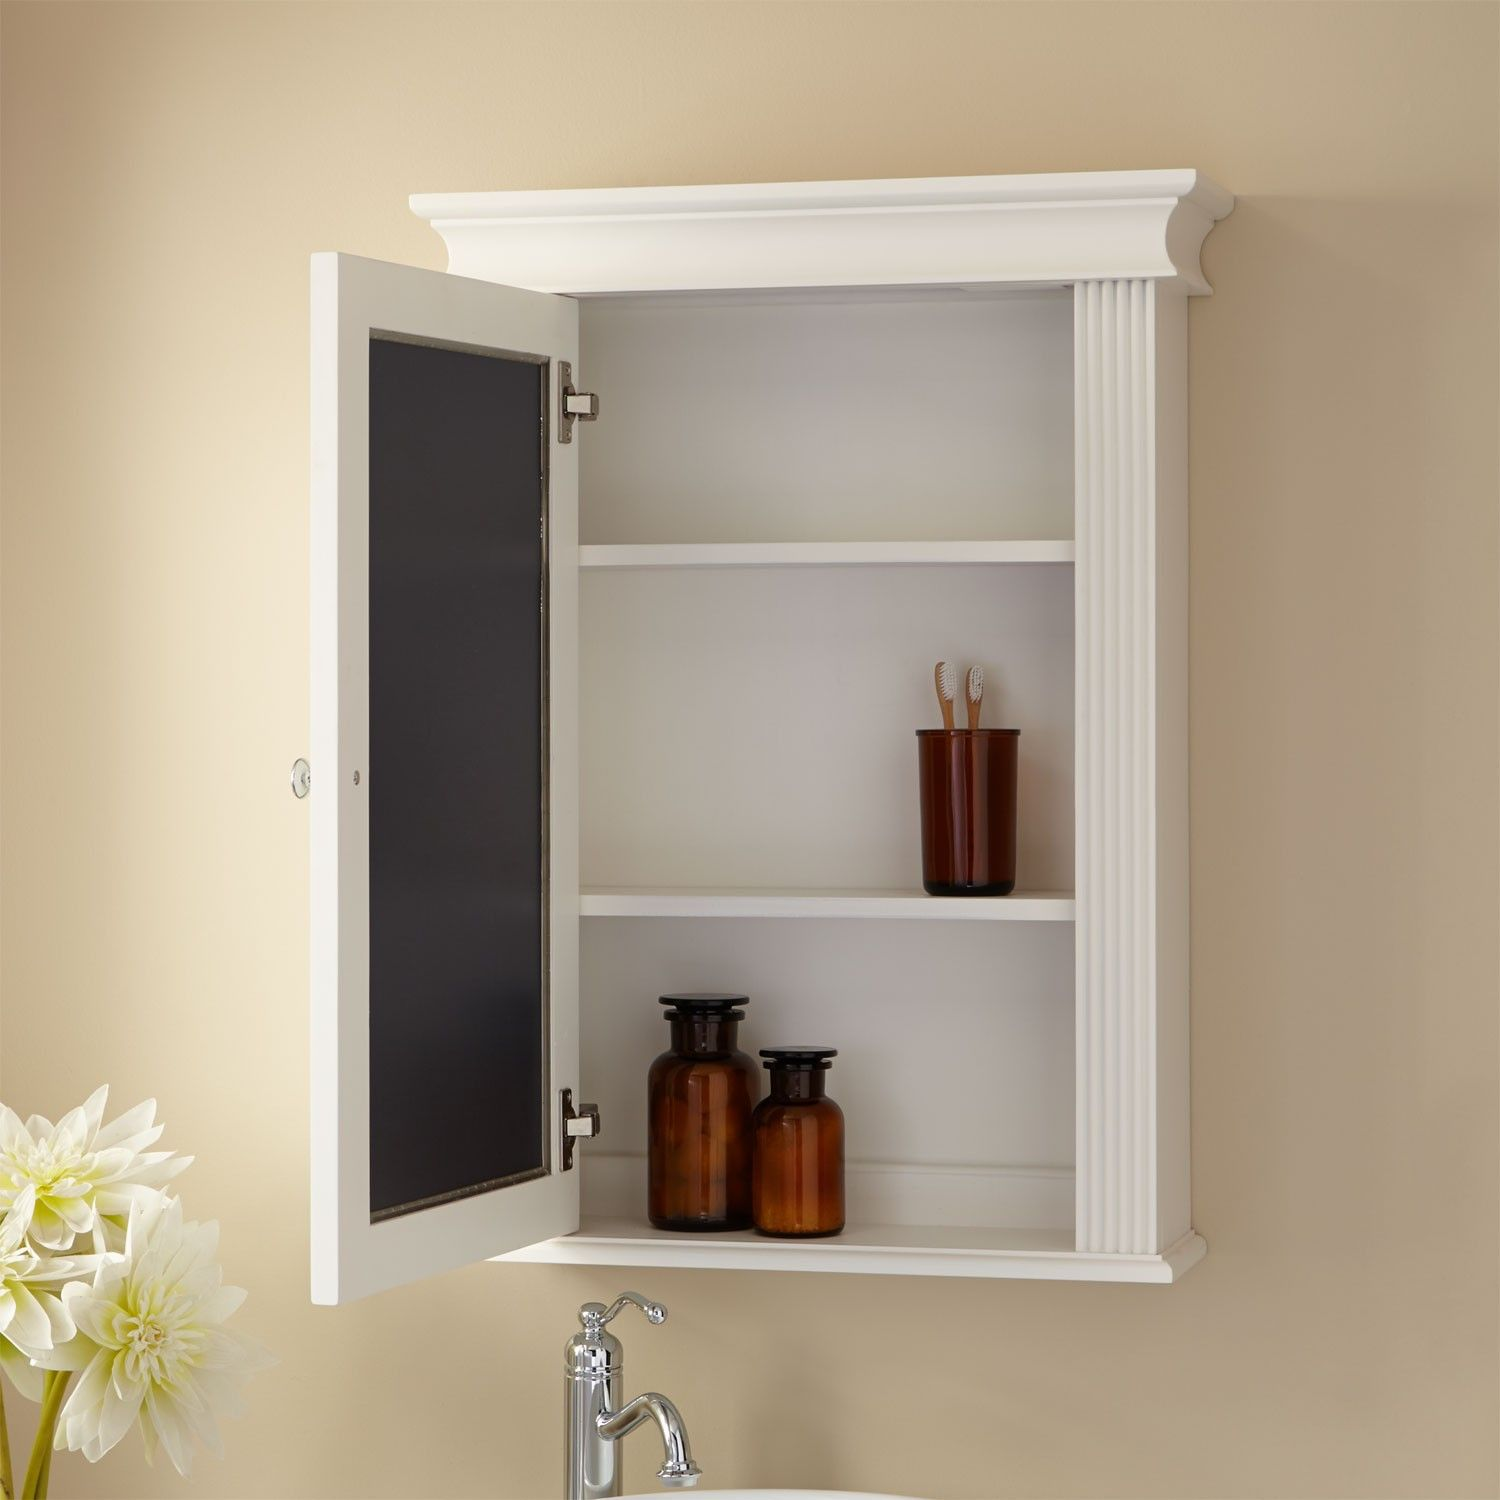 Canvas of Good Recessed Medicine Cabinet No Mirror ...